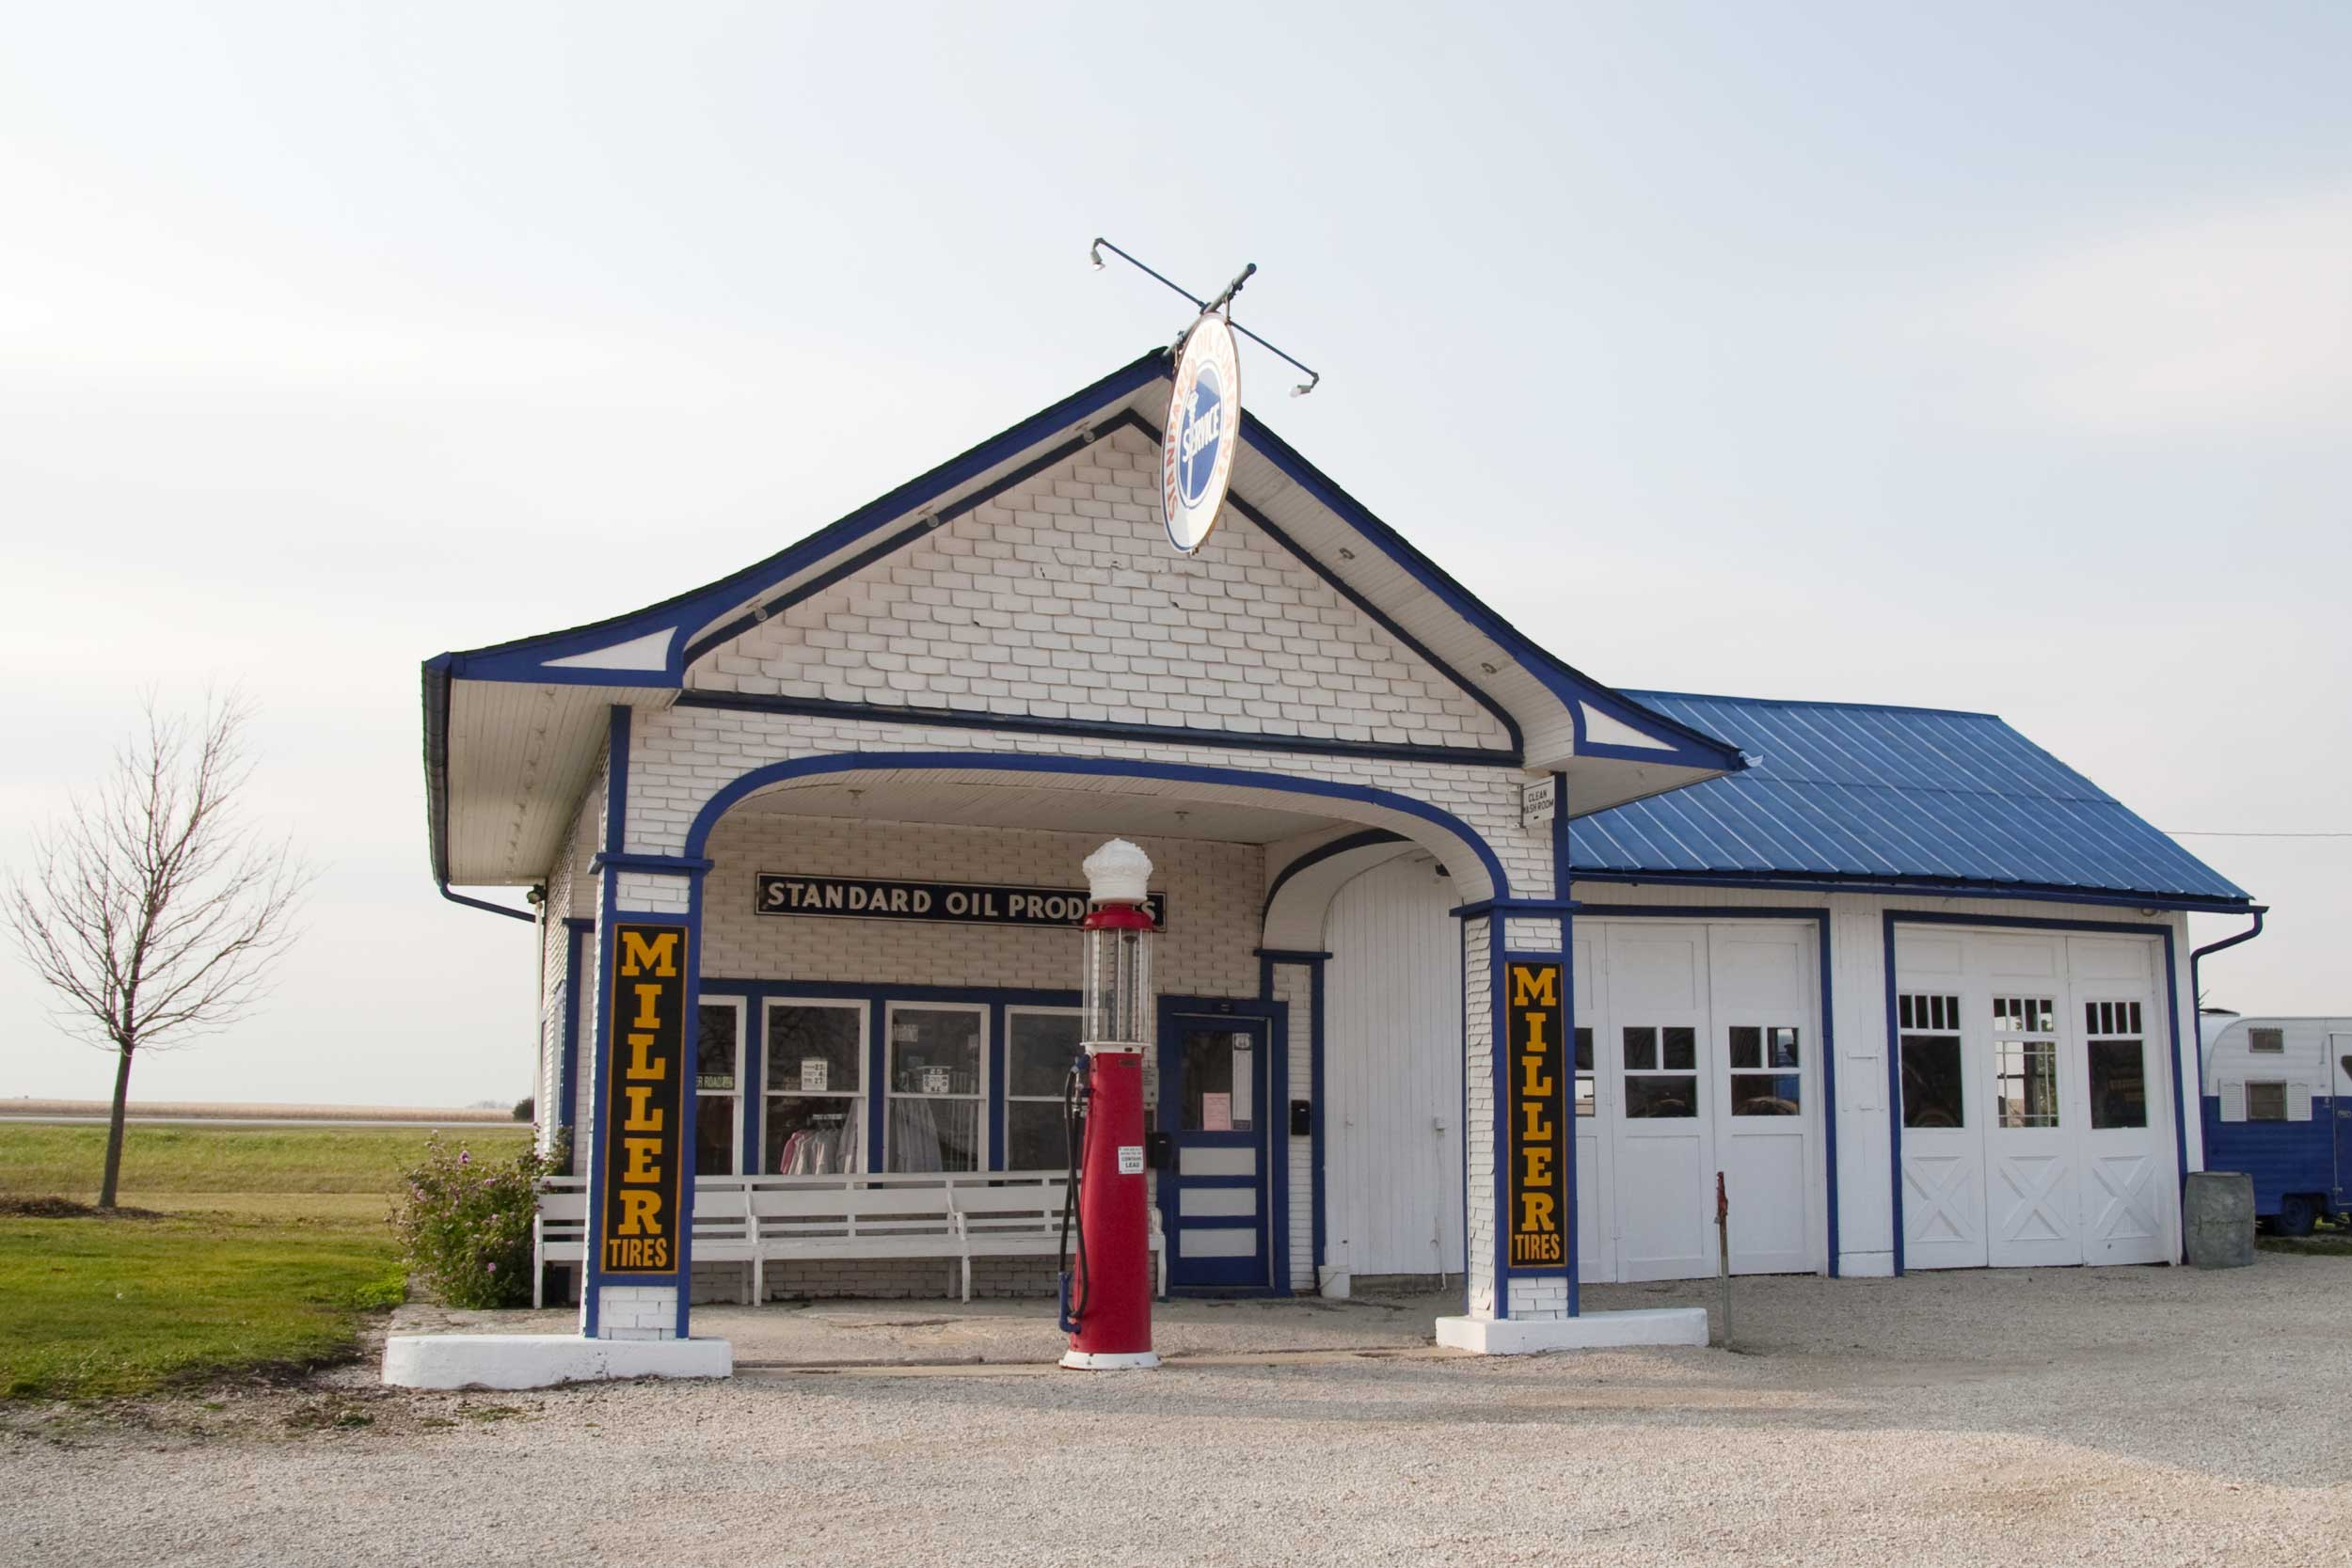 Gas station with blue roof, white walls and a red glass-topped petrol pump in Illinois, USA